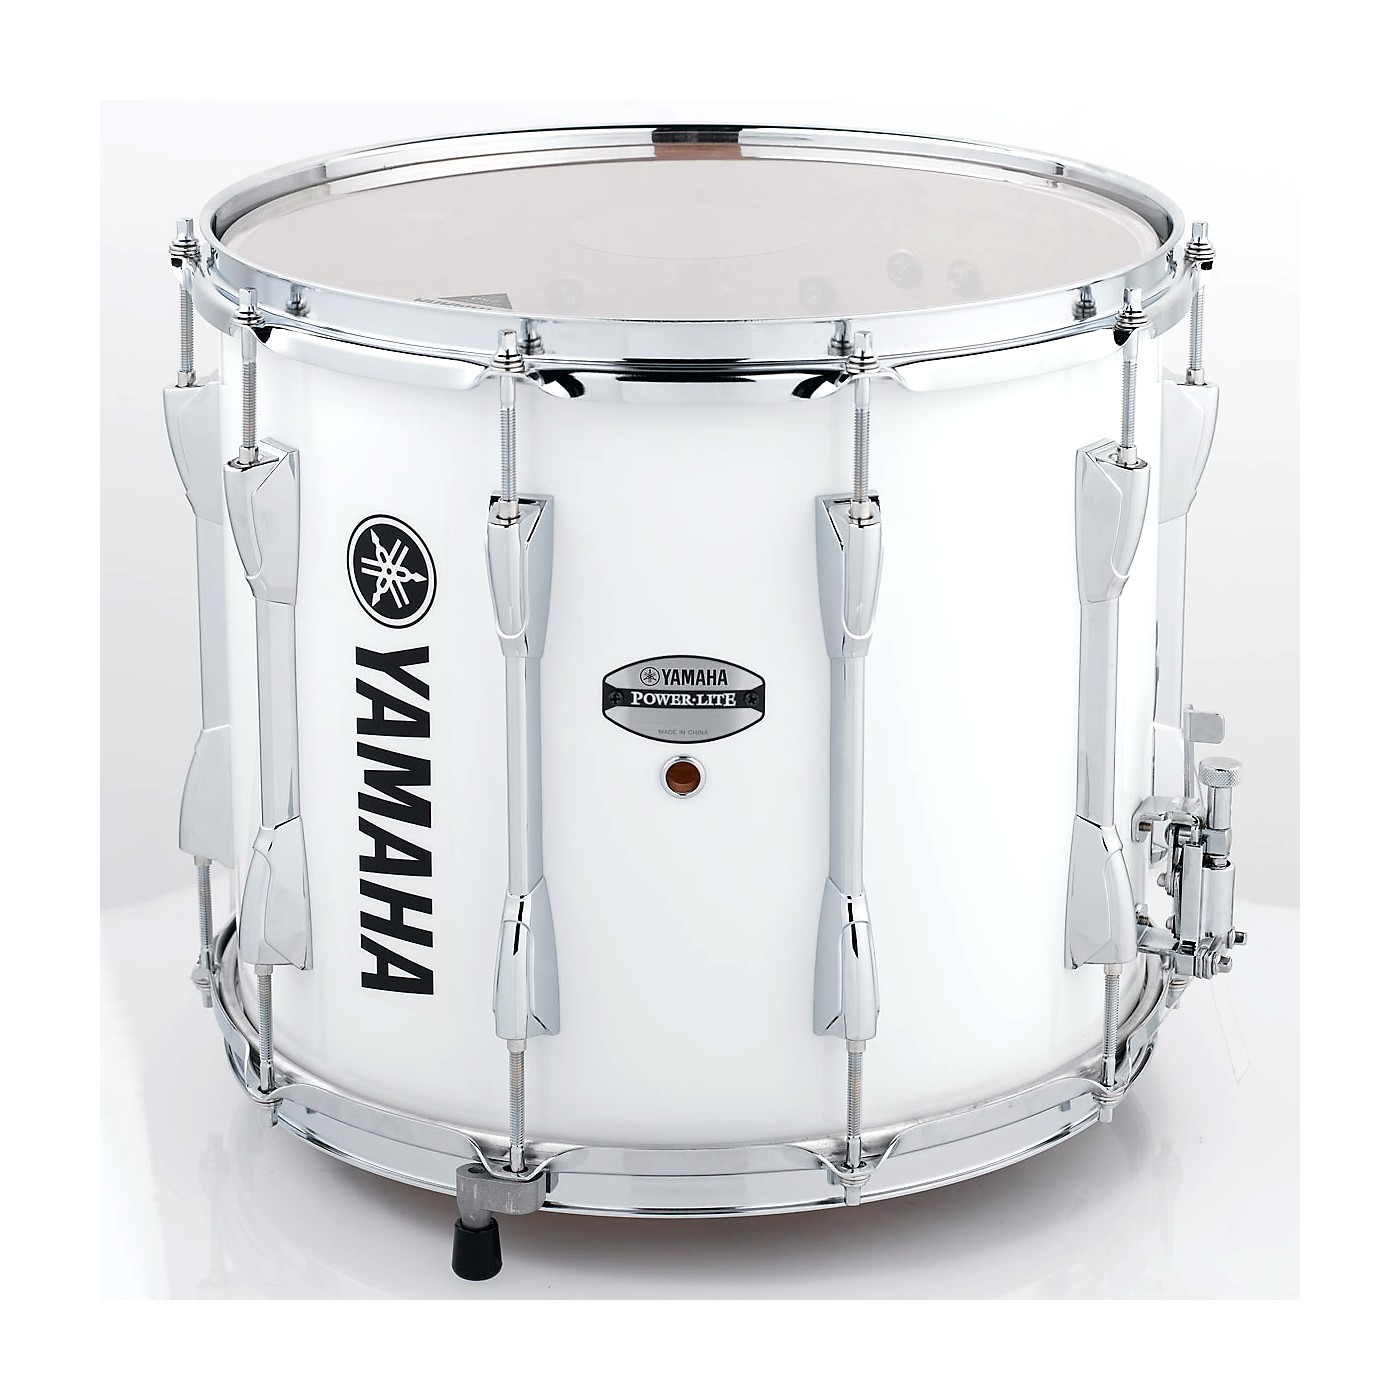 Yamaha Power-Lite Marching Snare Drum thumbnail